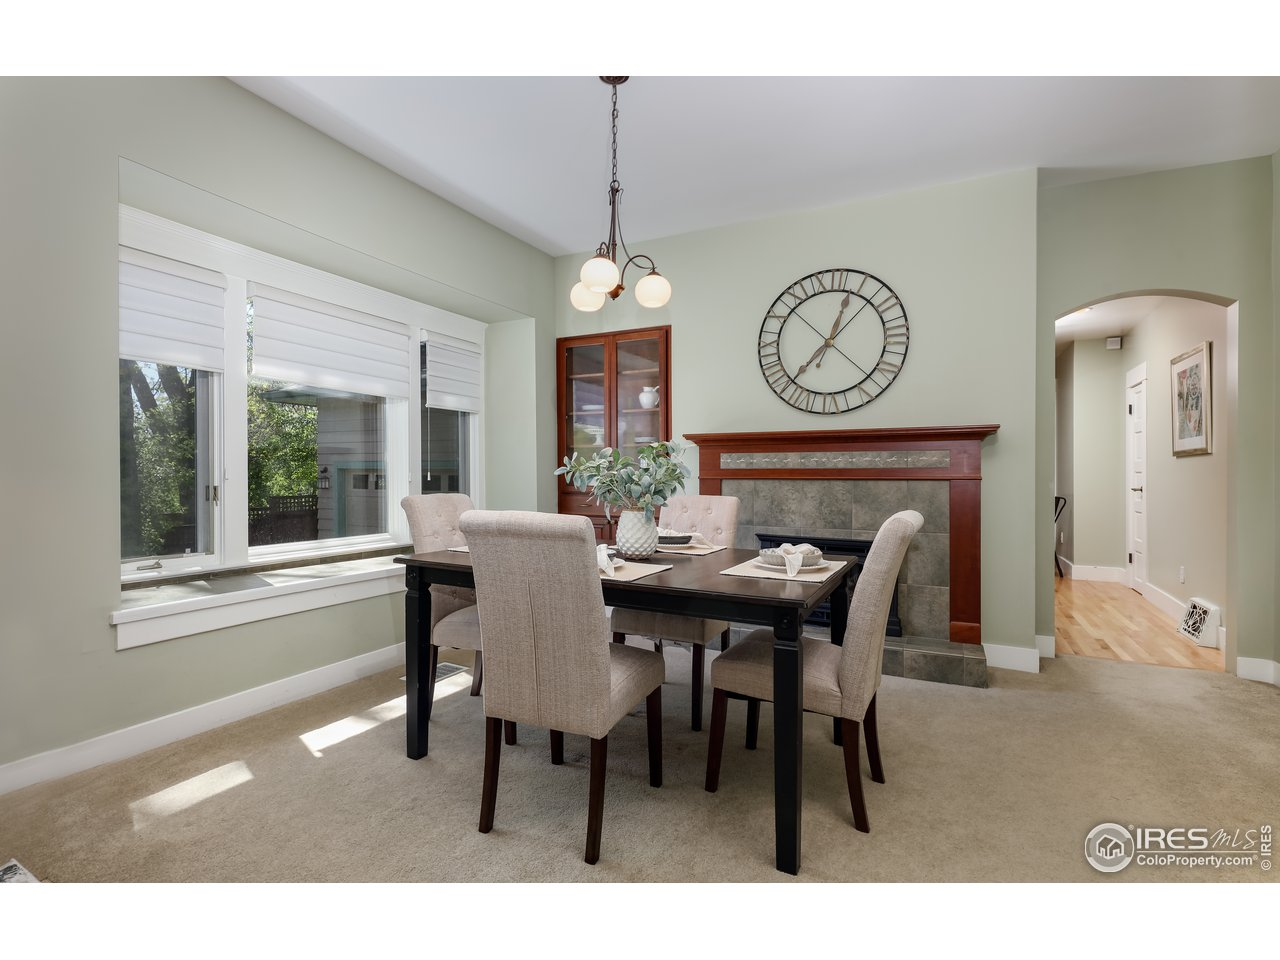 dining area and built ins